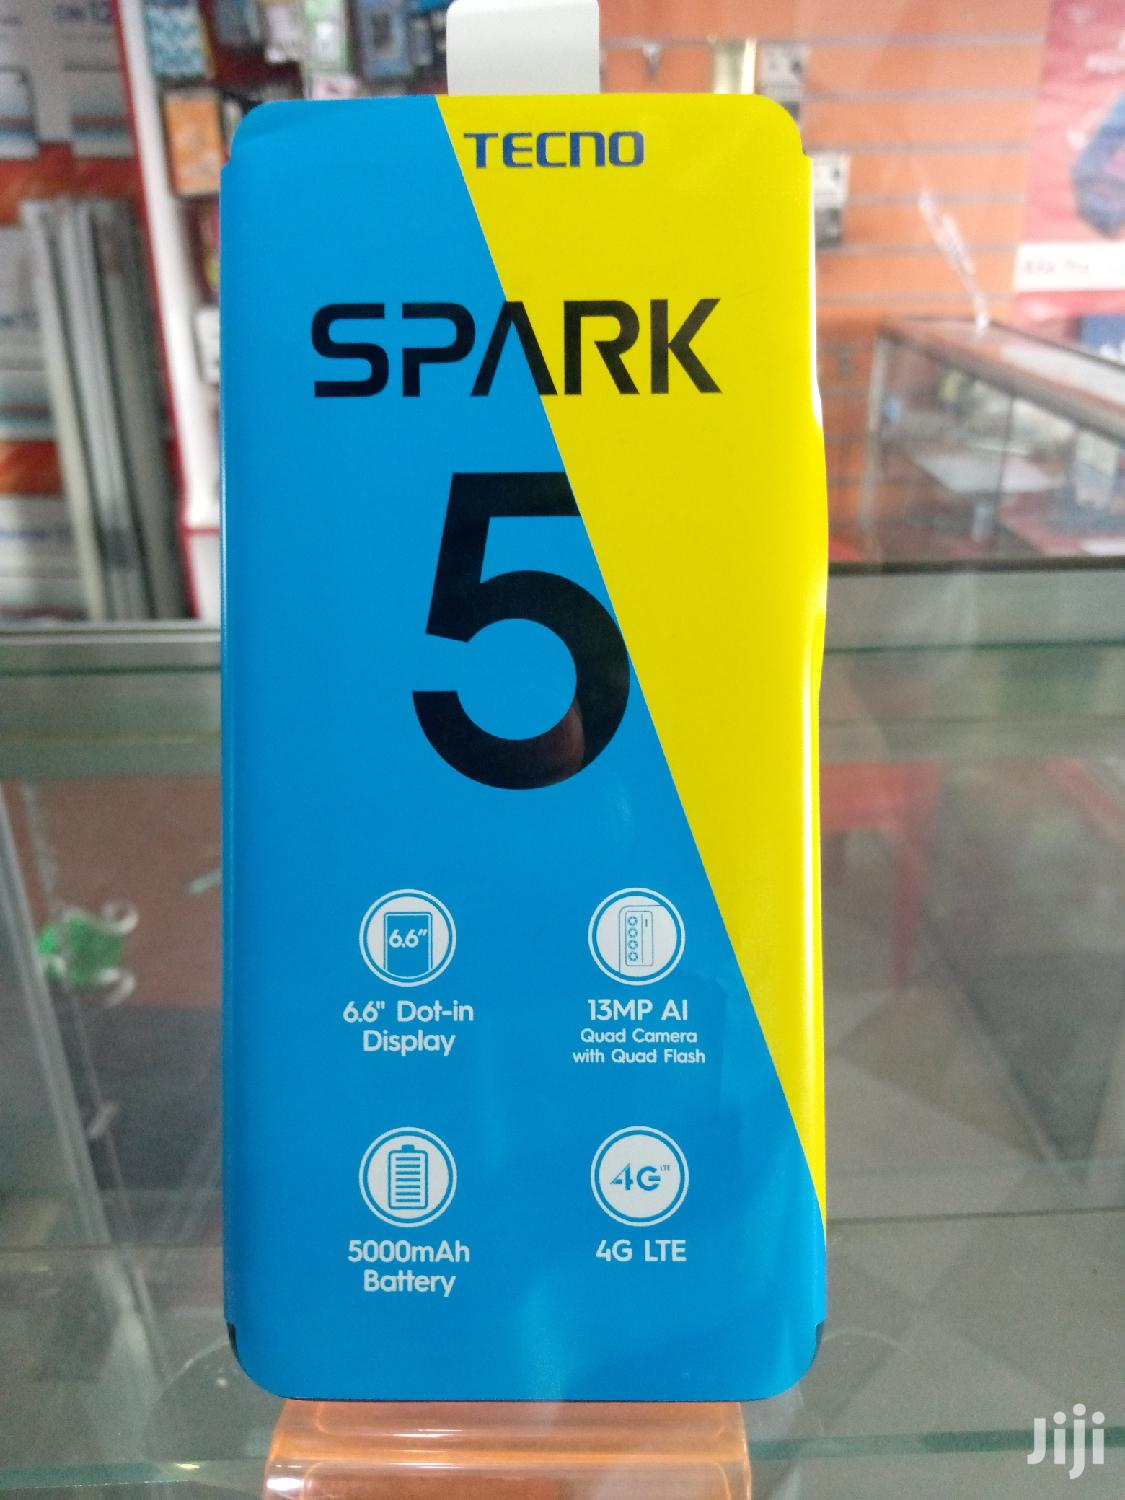 New Tecno Spark 16 GB Black | Mobile Phones for sale in Moshi Urban, Kilimanjaro Region, Tanzania